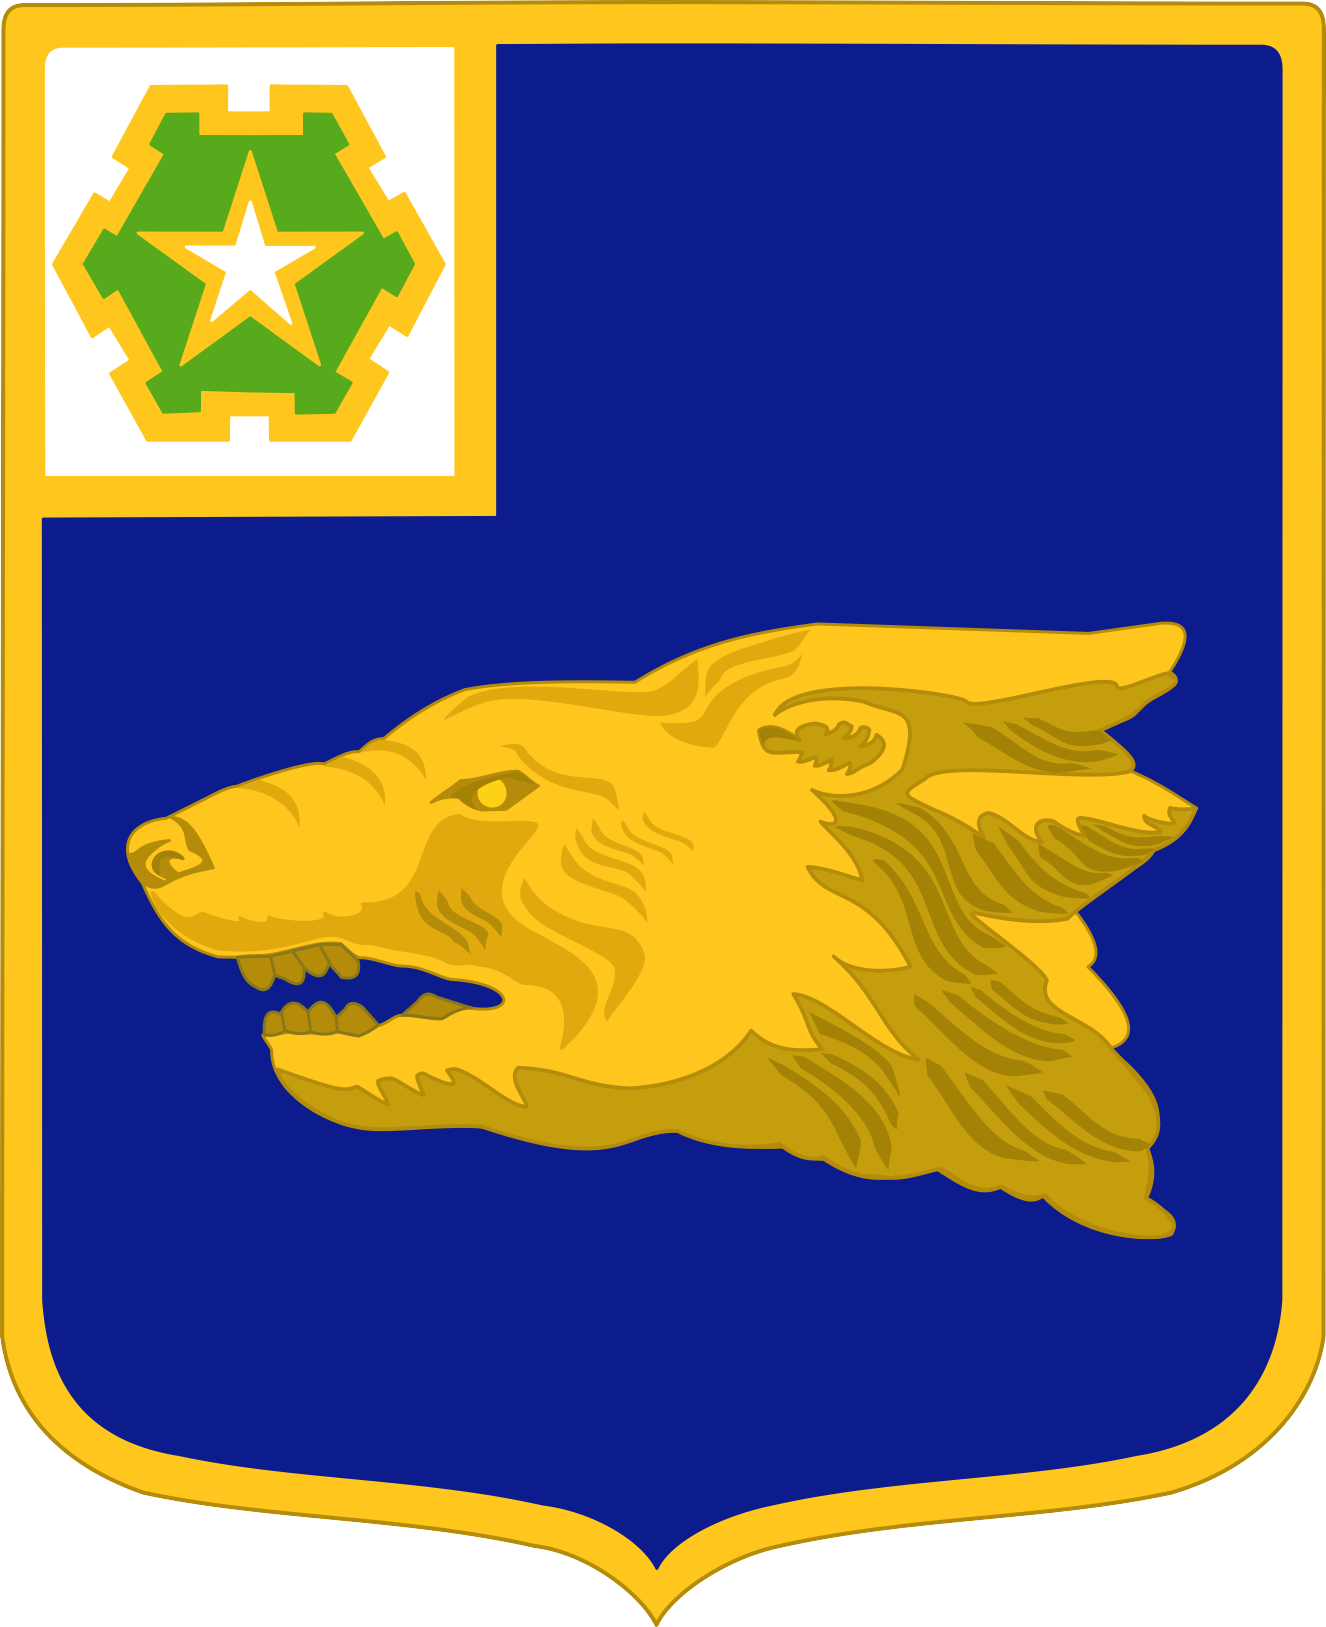 40th infantry division clipart image download 40th Infantry Regiment (United States)   Military Wiki   FANDOM ... image download